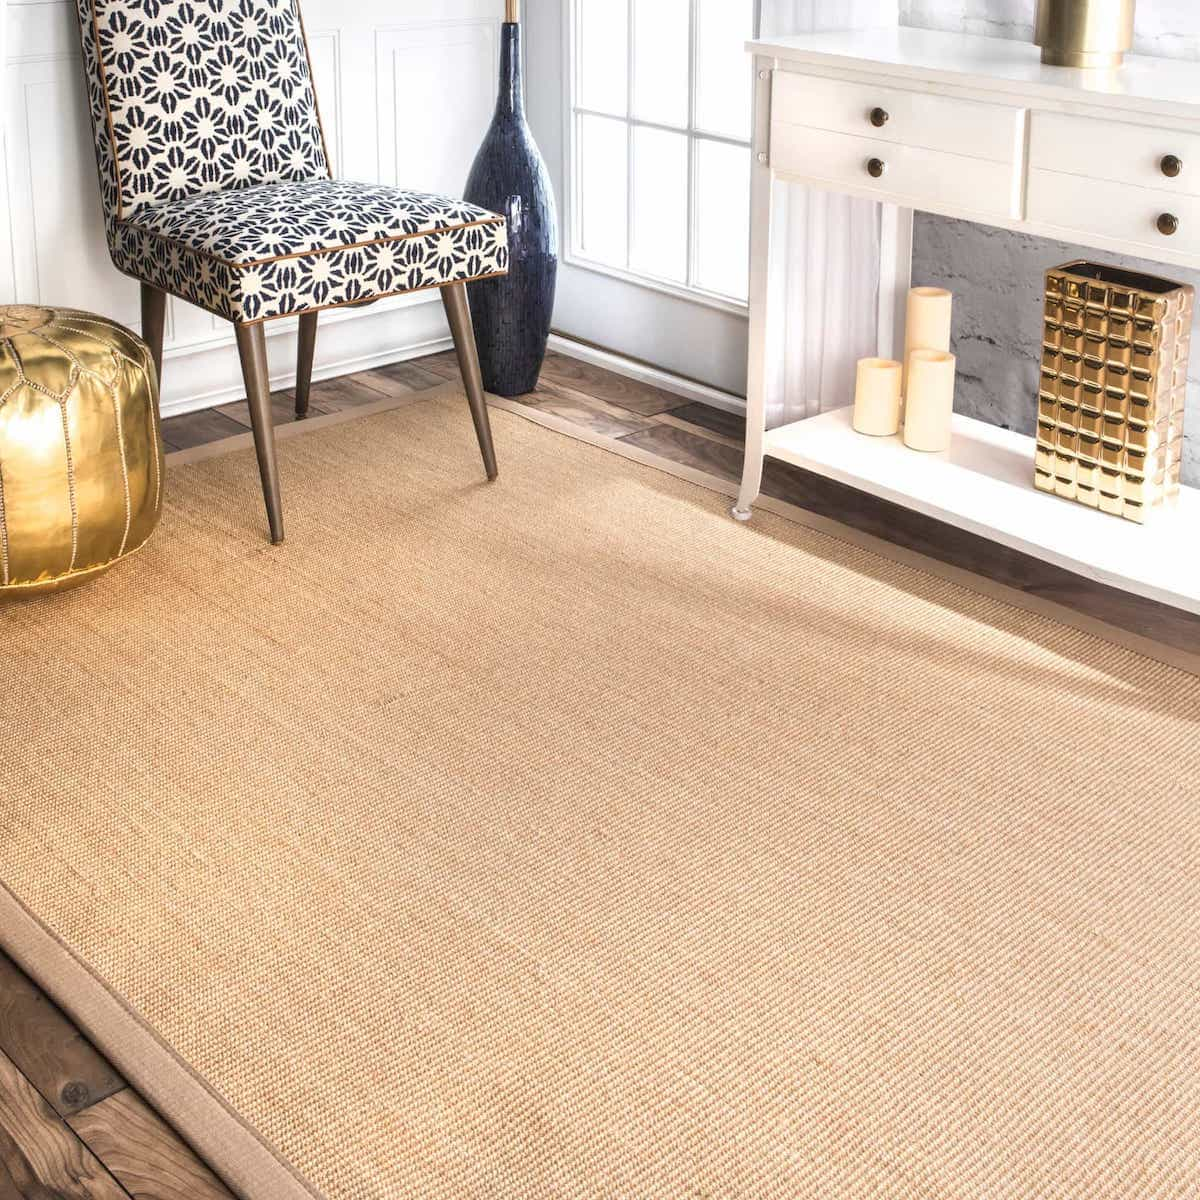 7×9 Sisal Rug For Living Room Area (View 12 of 15)